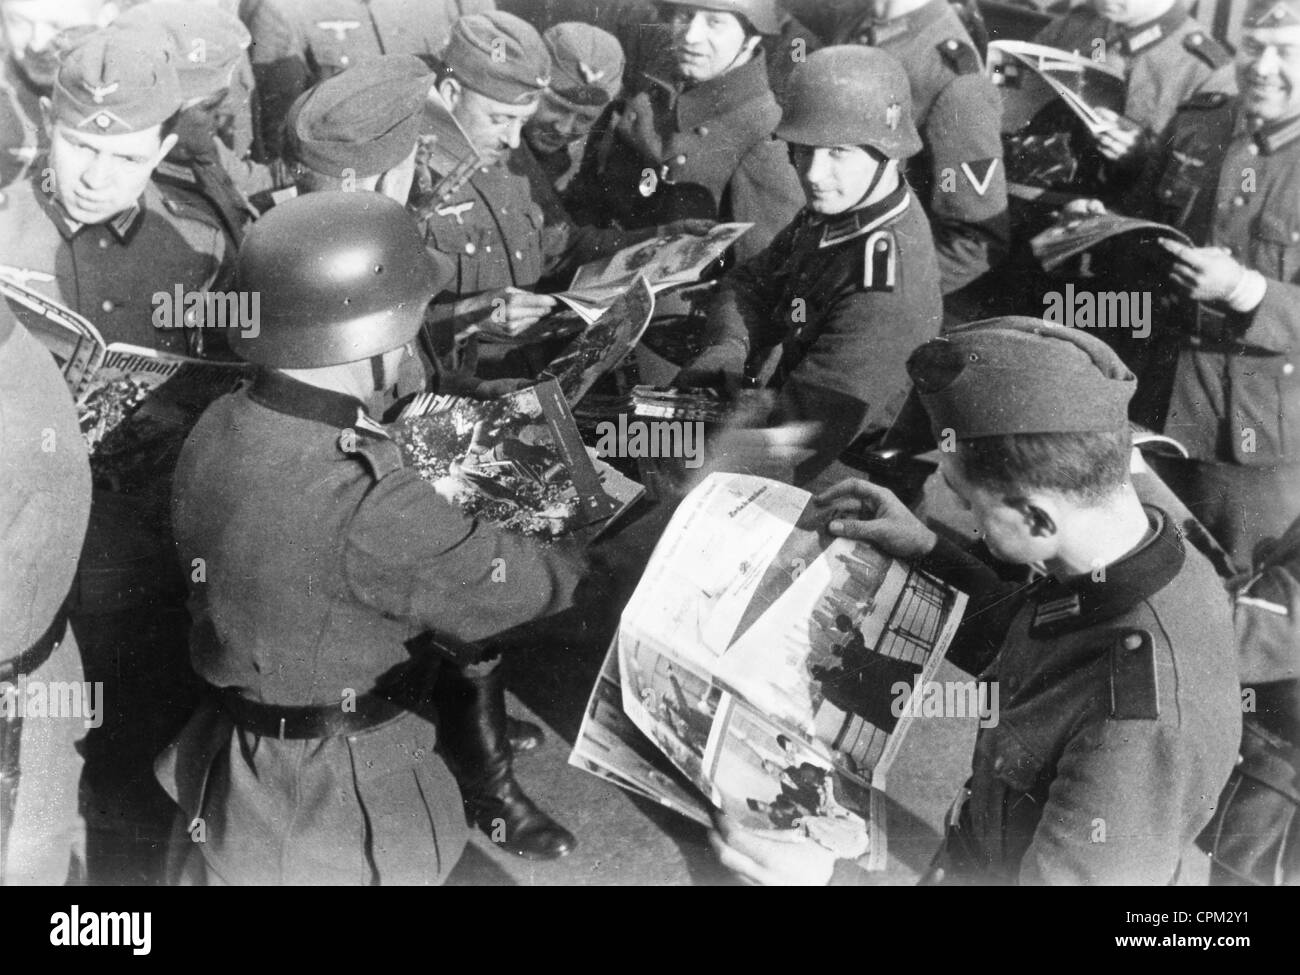 Soldiers Read the 'Westfront-Illustrierte' in Occupied France, 1940 - Stock Image